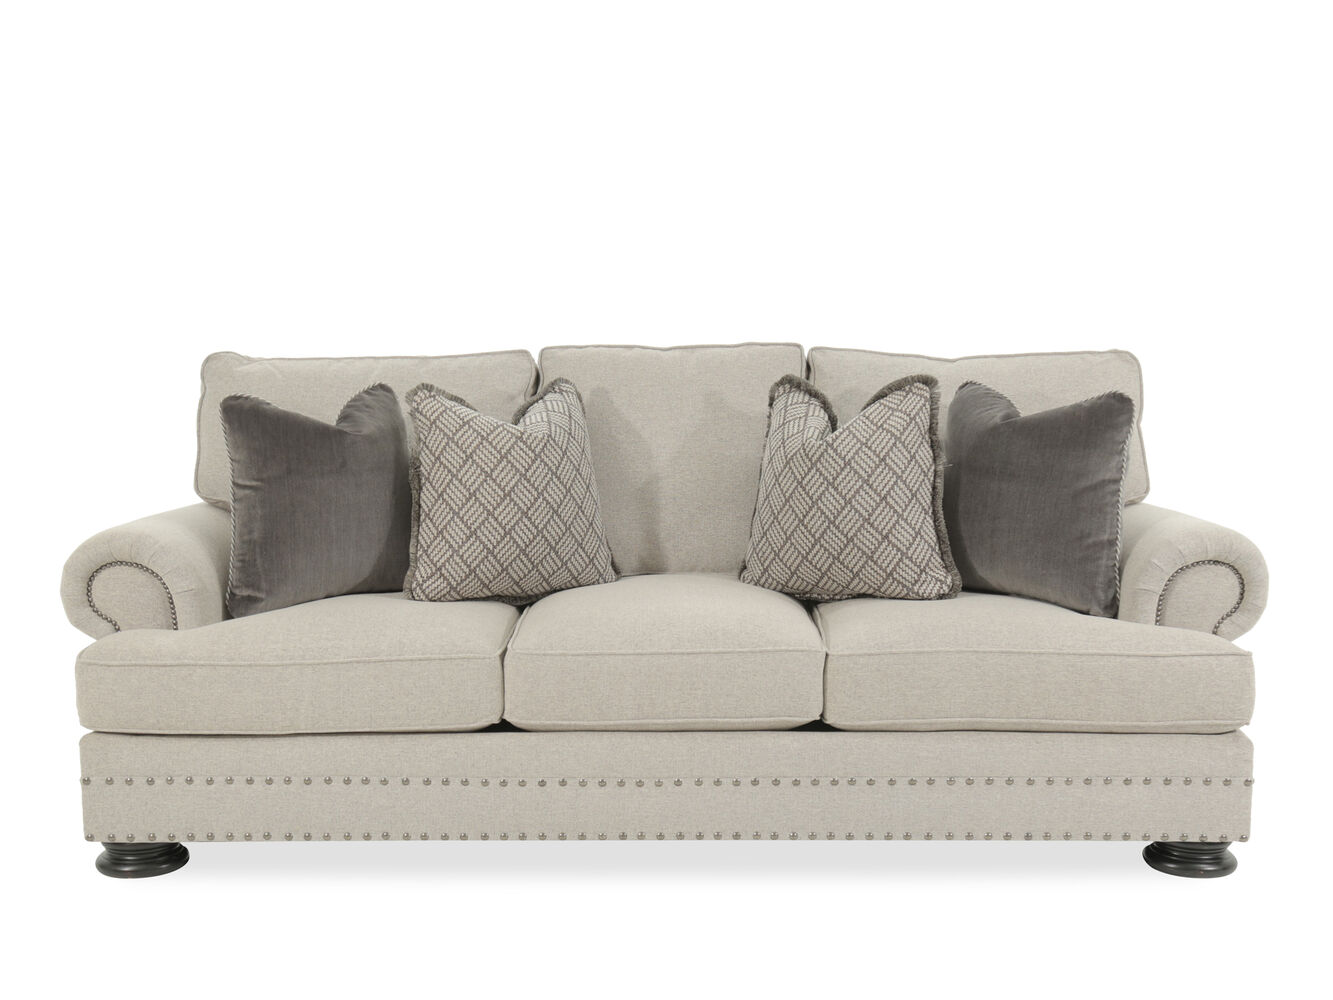 Bernhardt foster sofa mathis brothers furniture for Where to buy bernhardt furniture online